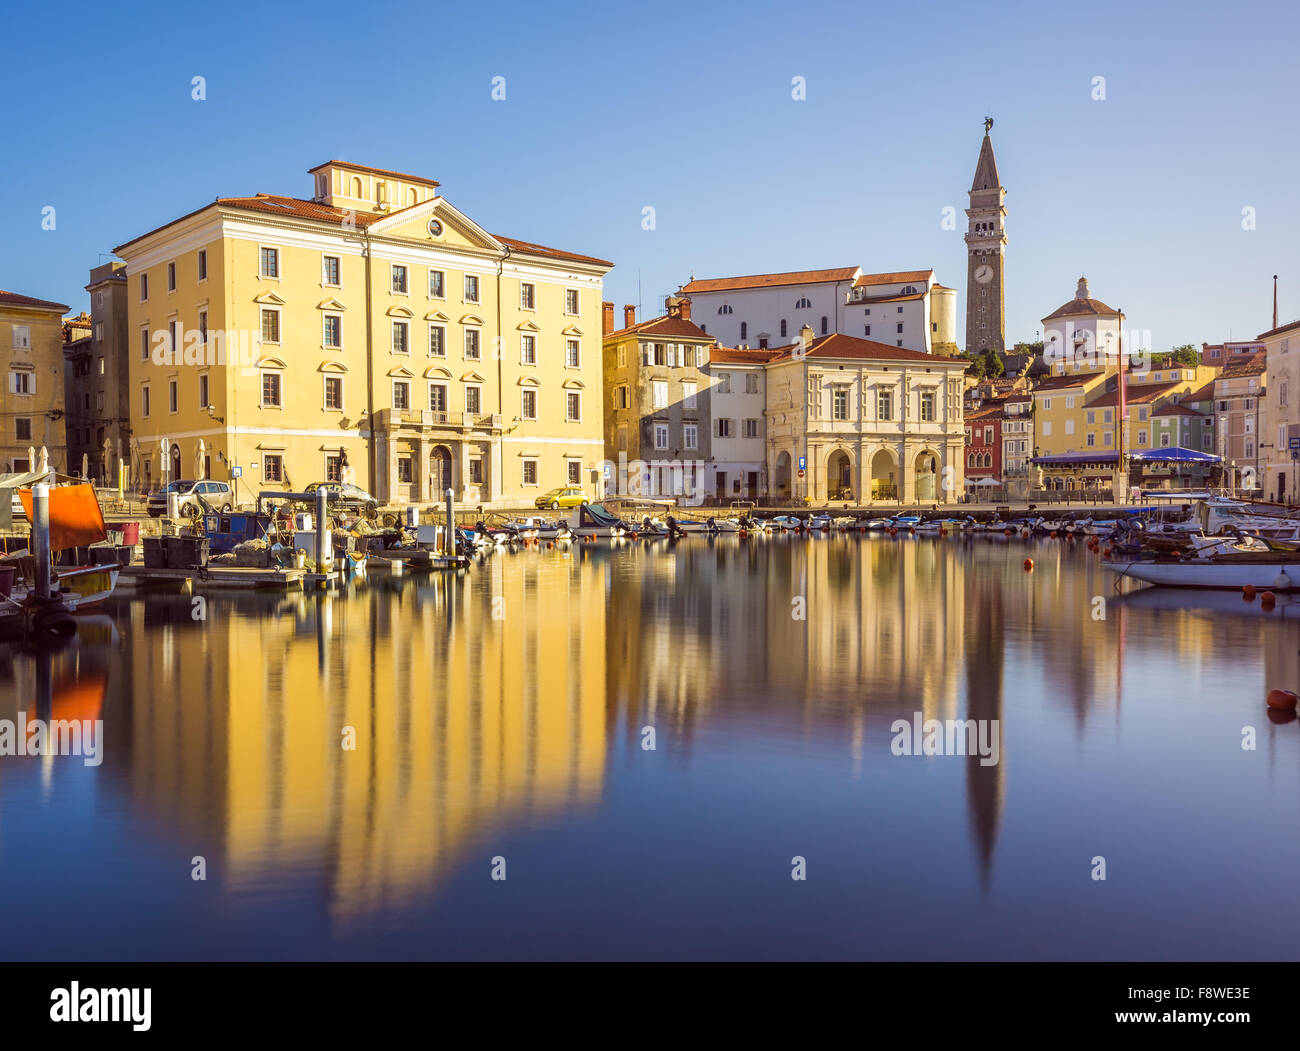 Buildings on the Main Square Tartini of Piran City Reflected on Water in Slovenia. - Stock Image